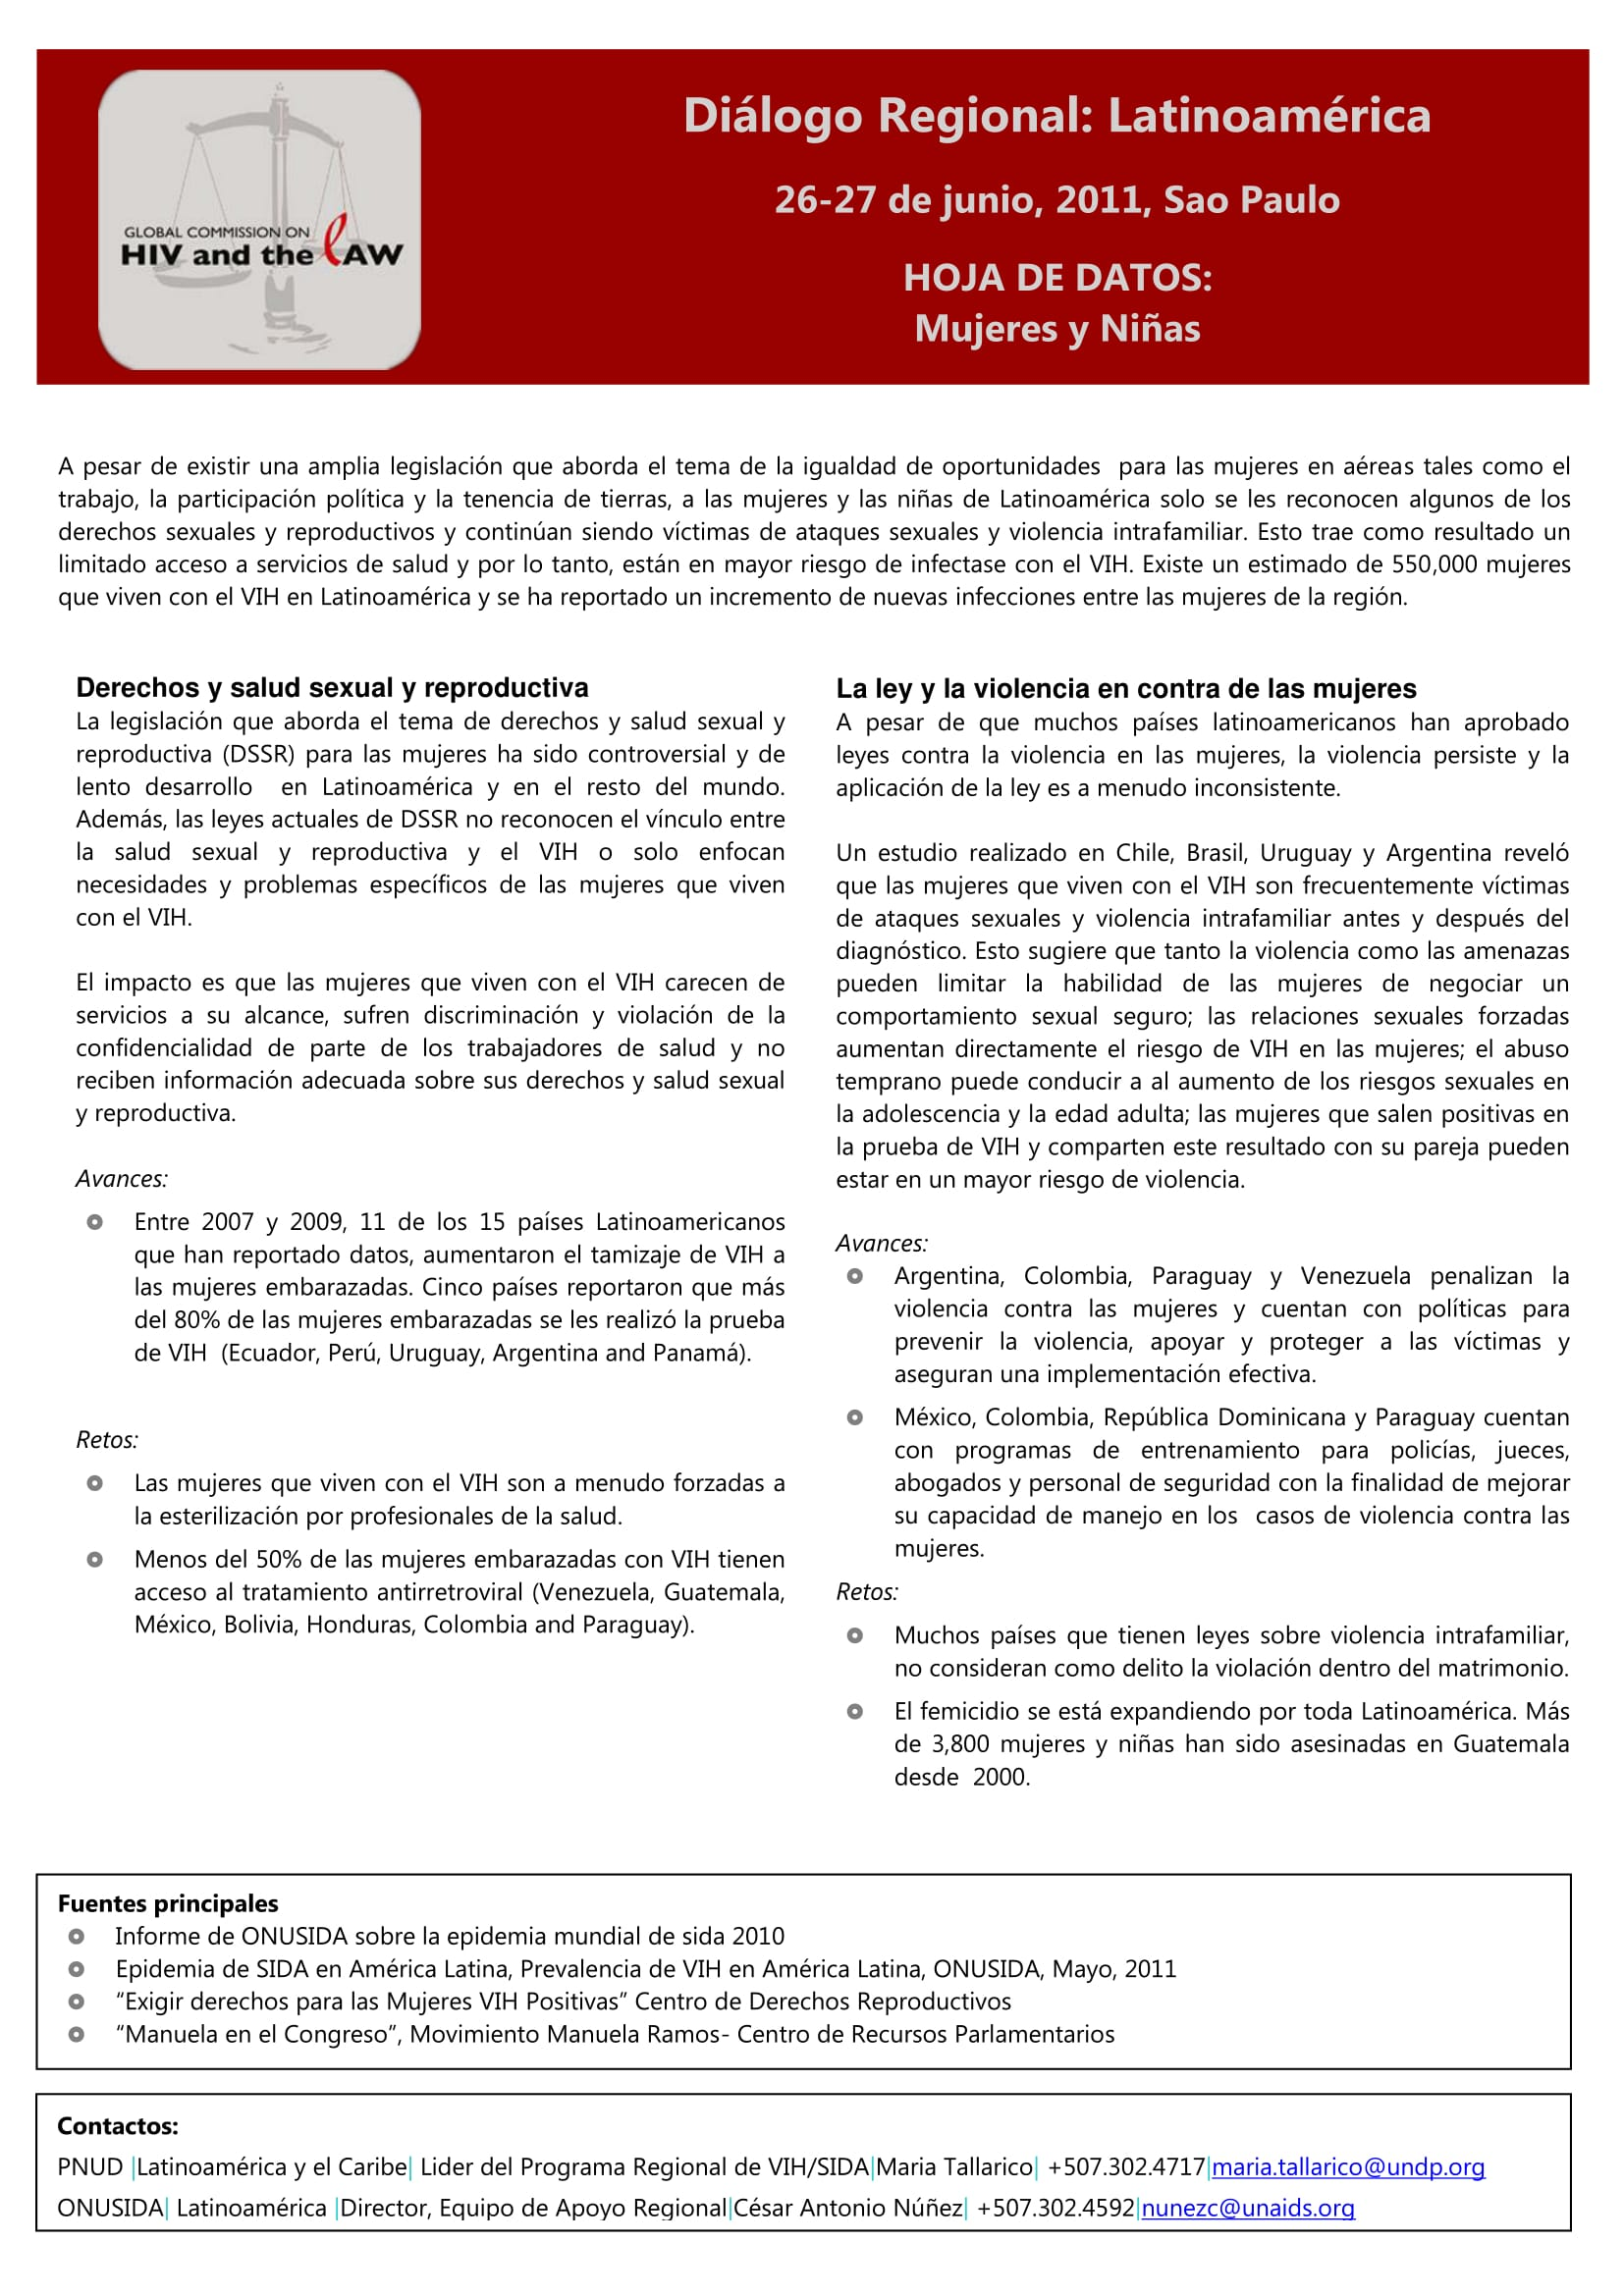 HIV and the Law in Latin America: Factsheet – Women and Girls